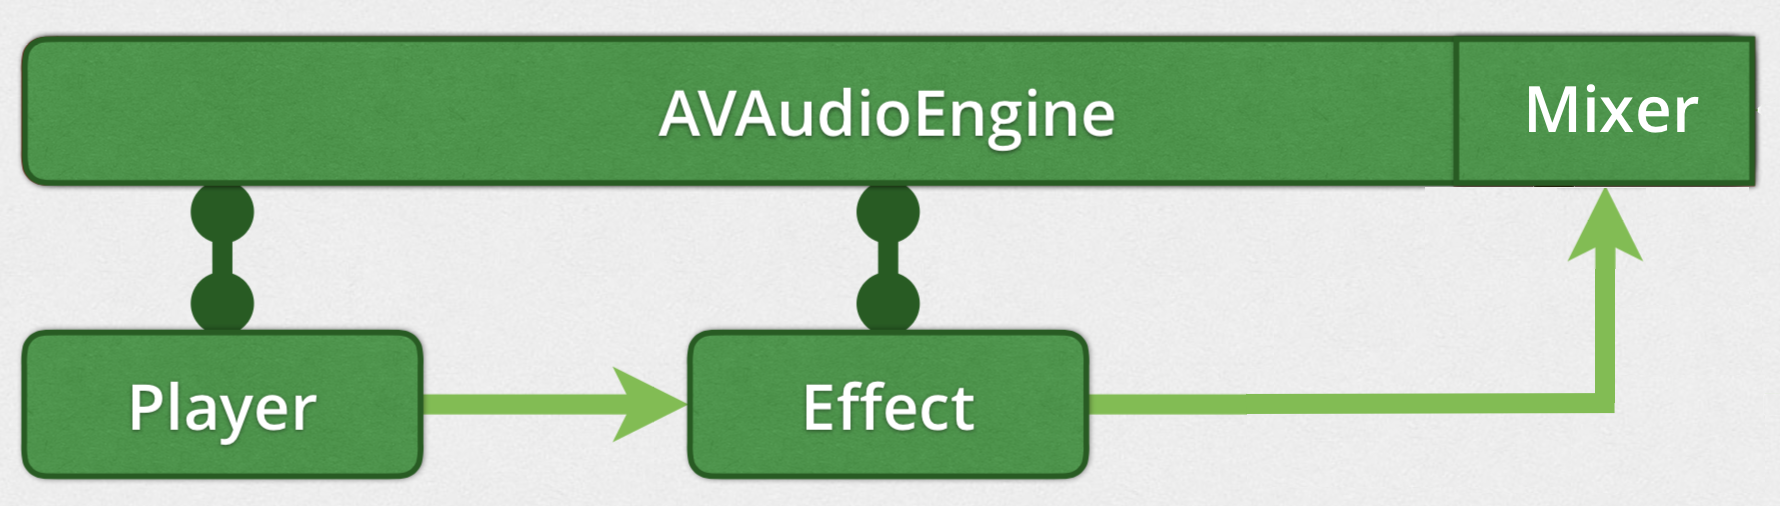 AVAudioEngine Tutorial for iOS: Getting Started | raywenderlich com